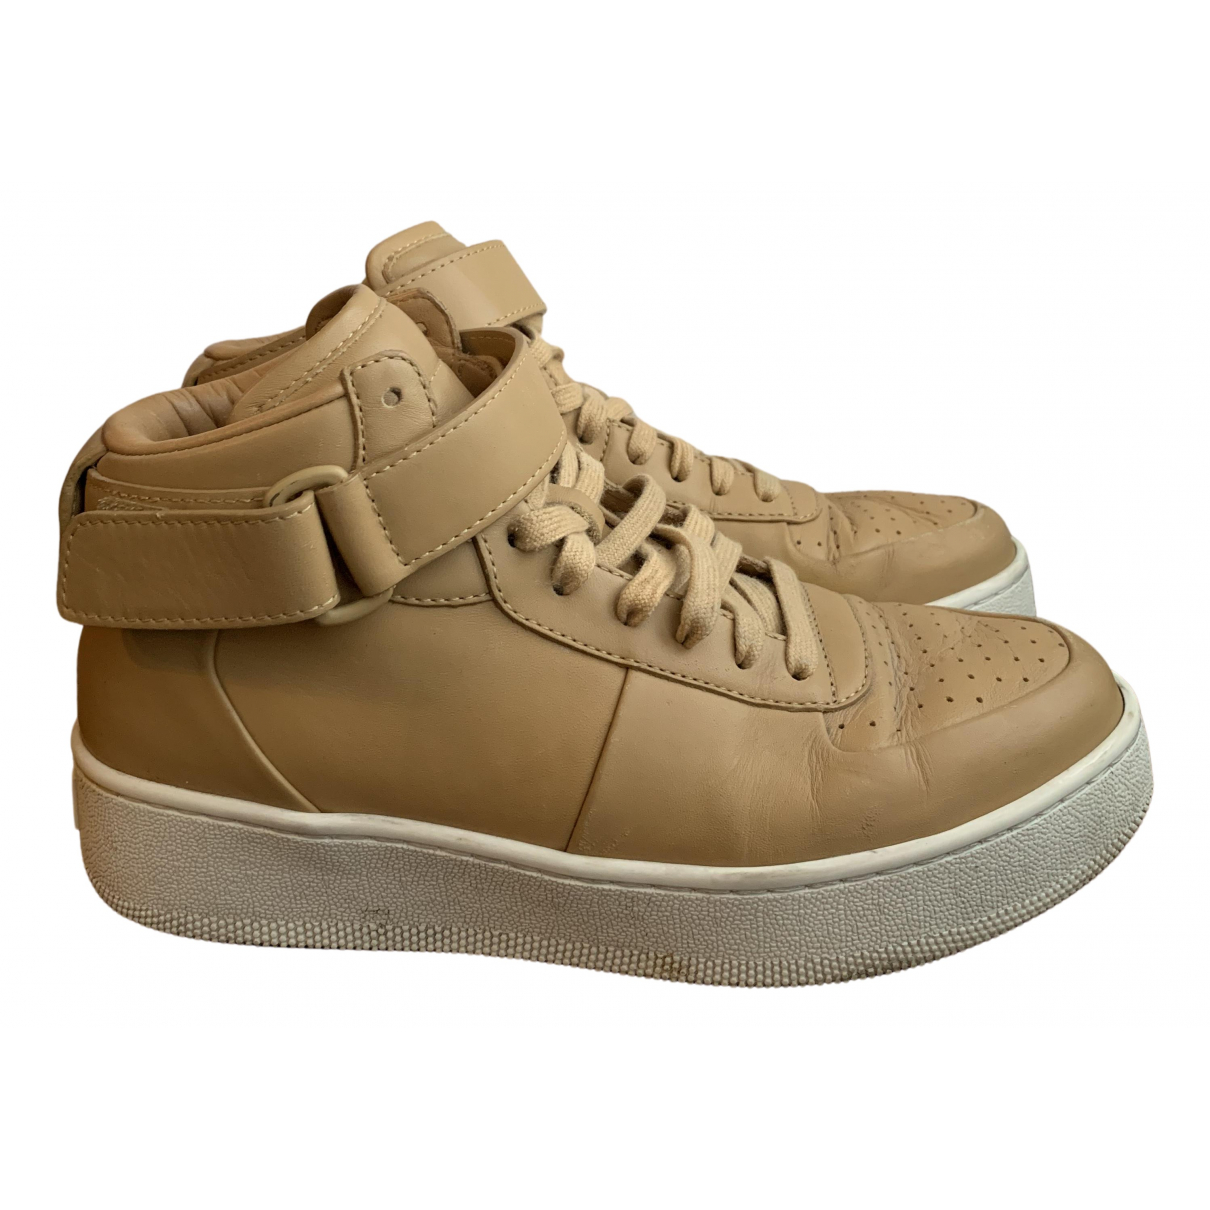 Celine N Beige Leather Trainers for Women 39 EU